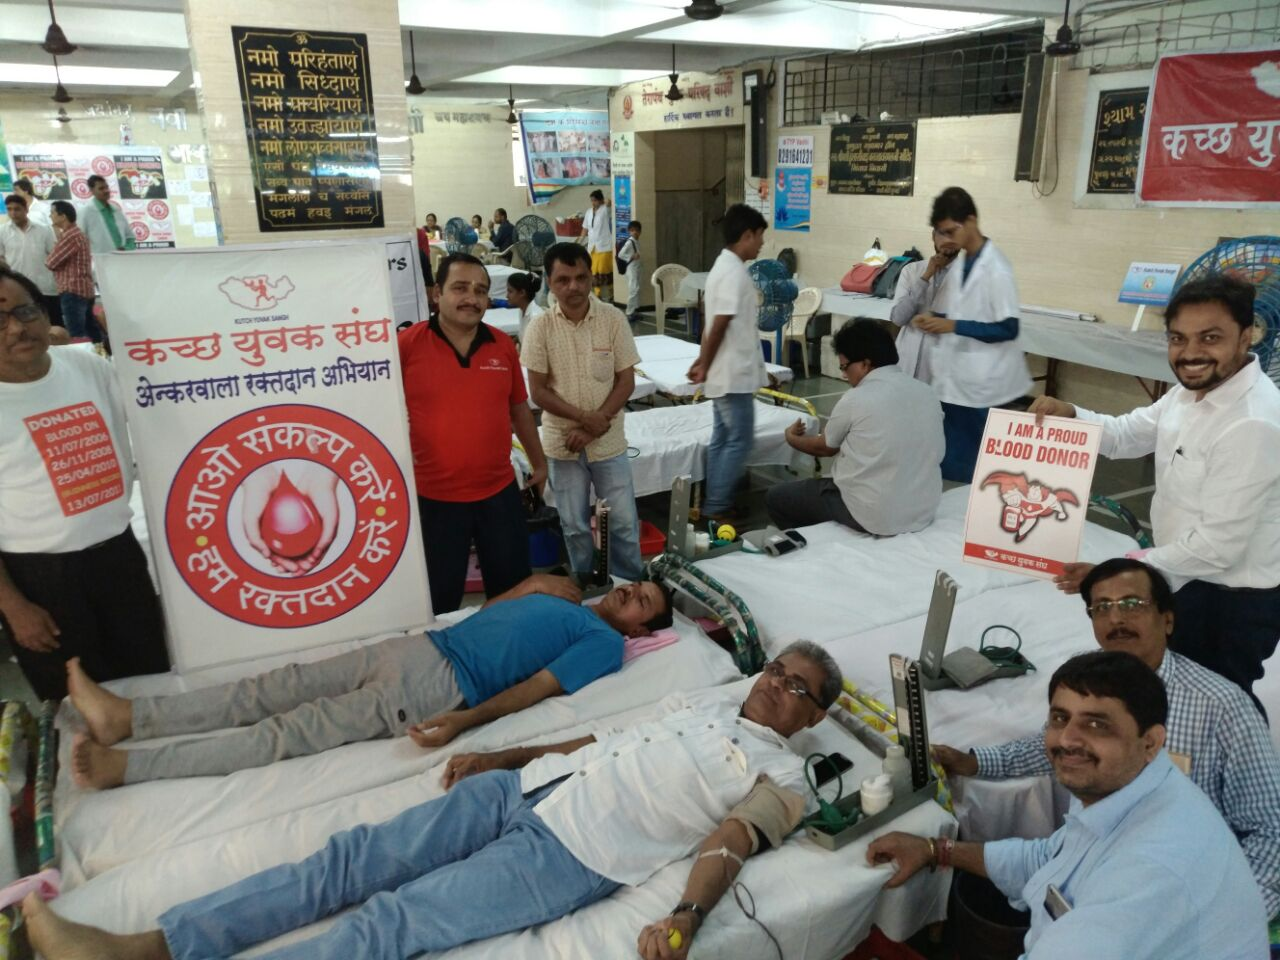 BLOOD DONATION CAMP AT VASHI